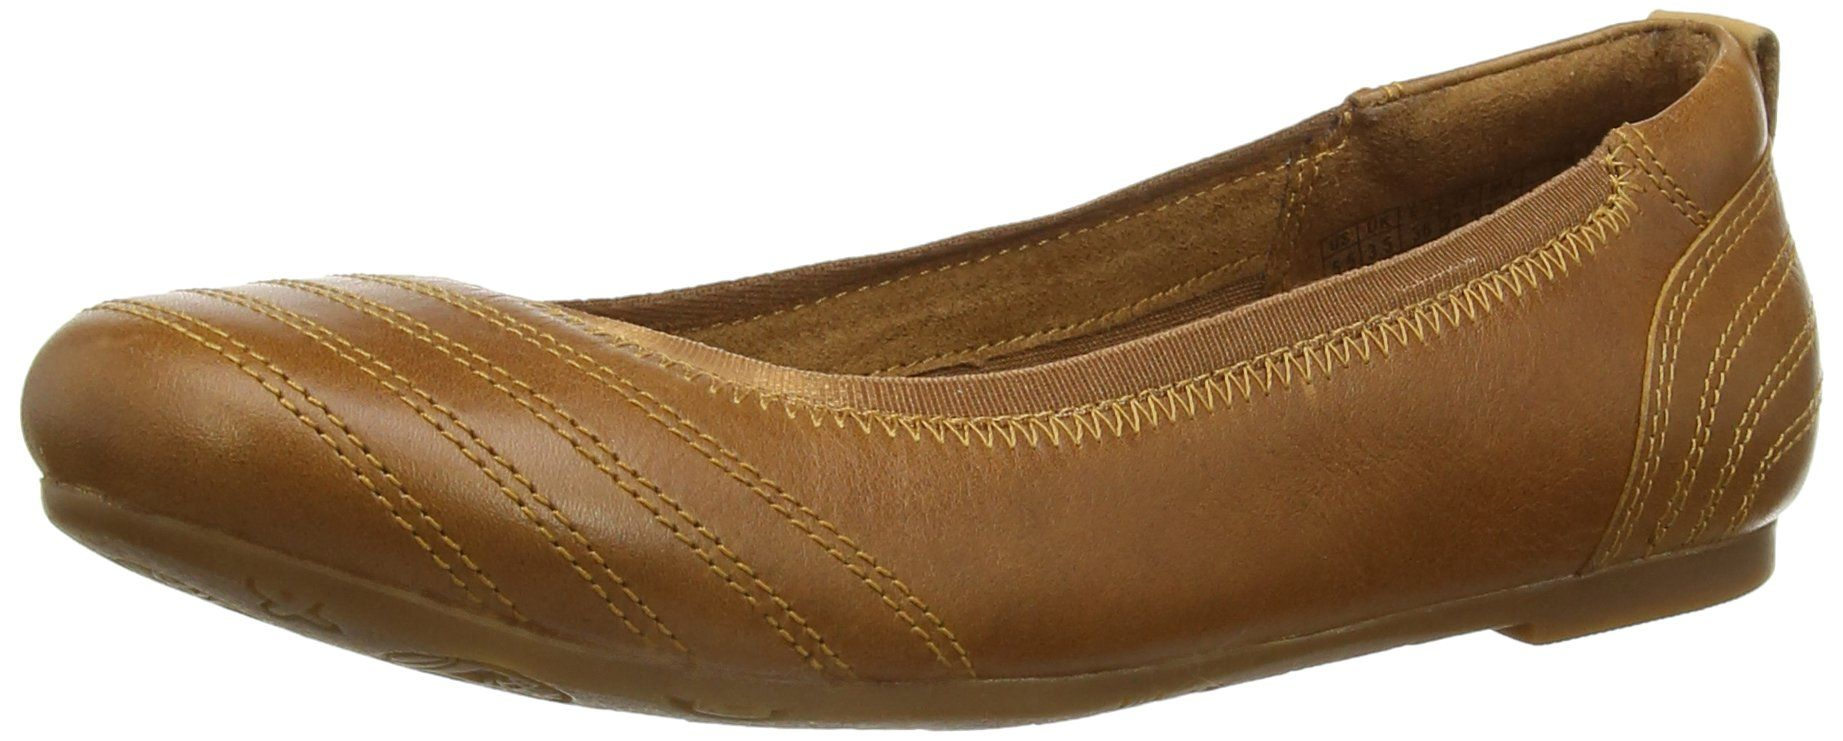 cd1a5d6bc53 Timberland Womens EK Ellsworth Stitch Ballet Flat Buckthorn Brown 7 M US      Click image for more details. (This is an affiliate link)   ...